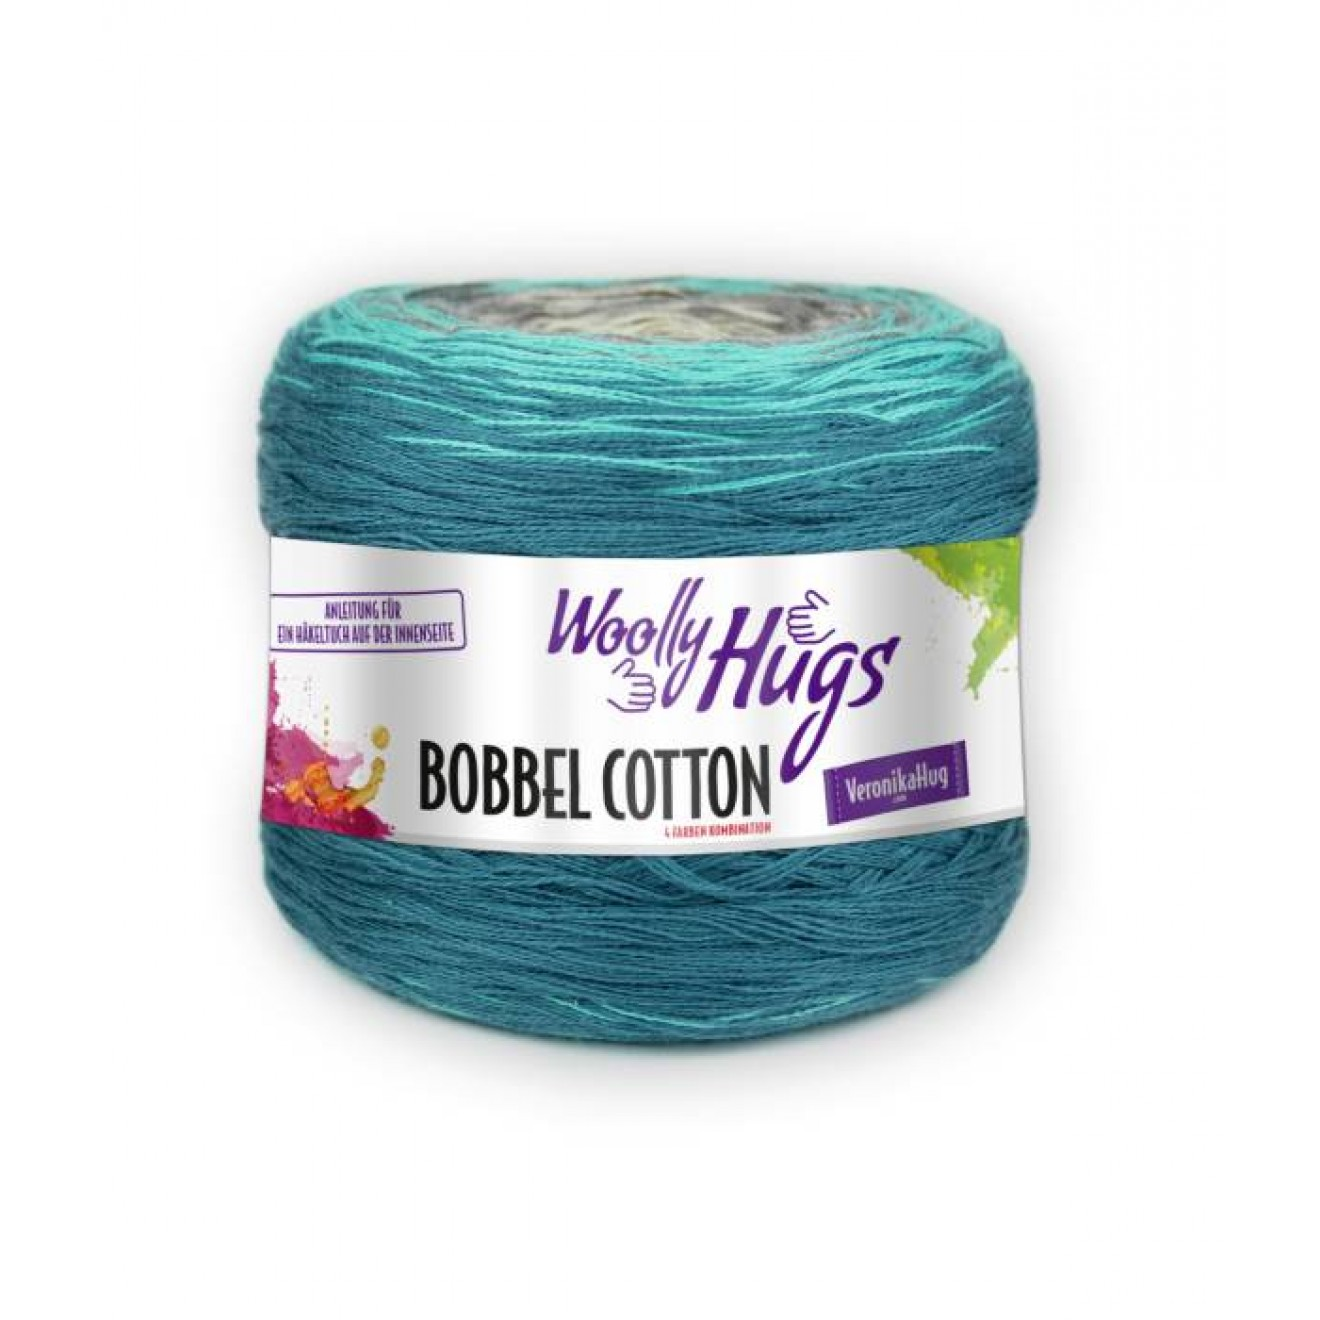 Pro Lana Woolly Hugs Bobbel Cotton 200g